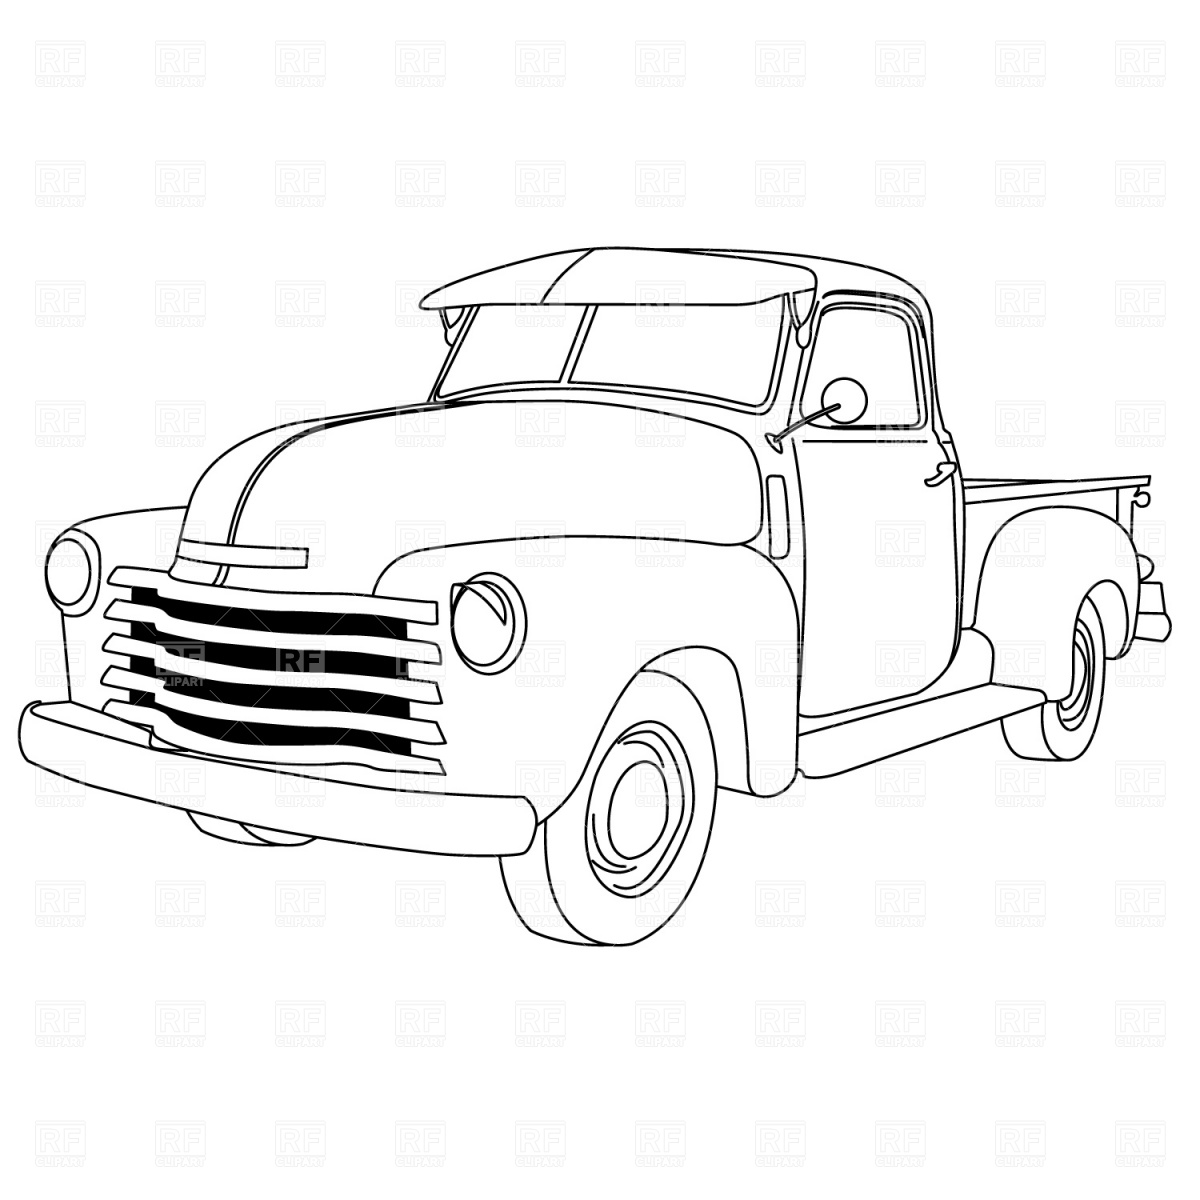 c10 drawing at getdrawings free for personal use c10 drawing 1958 Chevrolet Apache 4x4 1200x1200 old trucks coloring old american pick up truck coloring